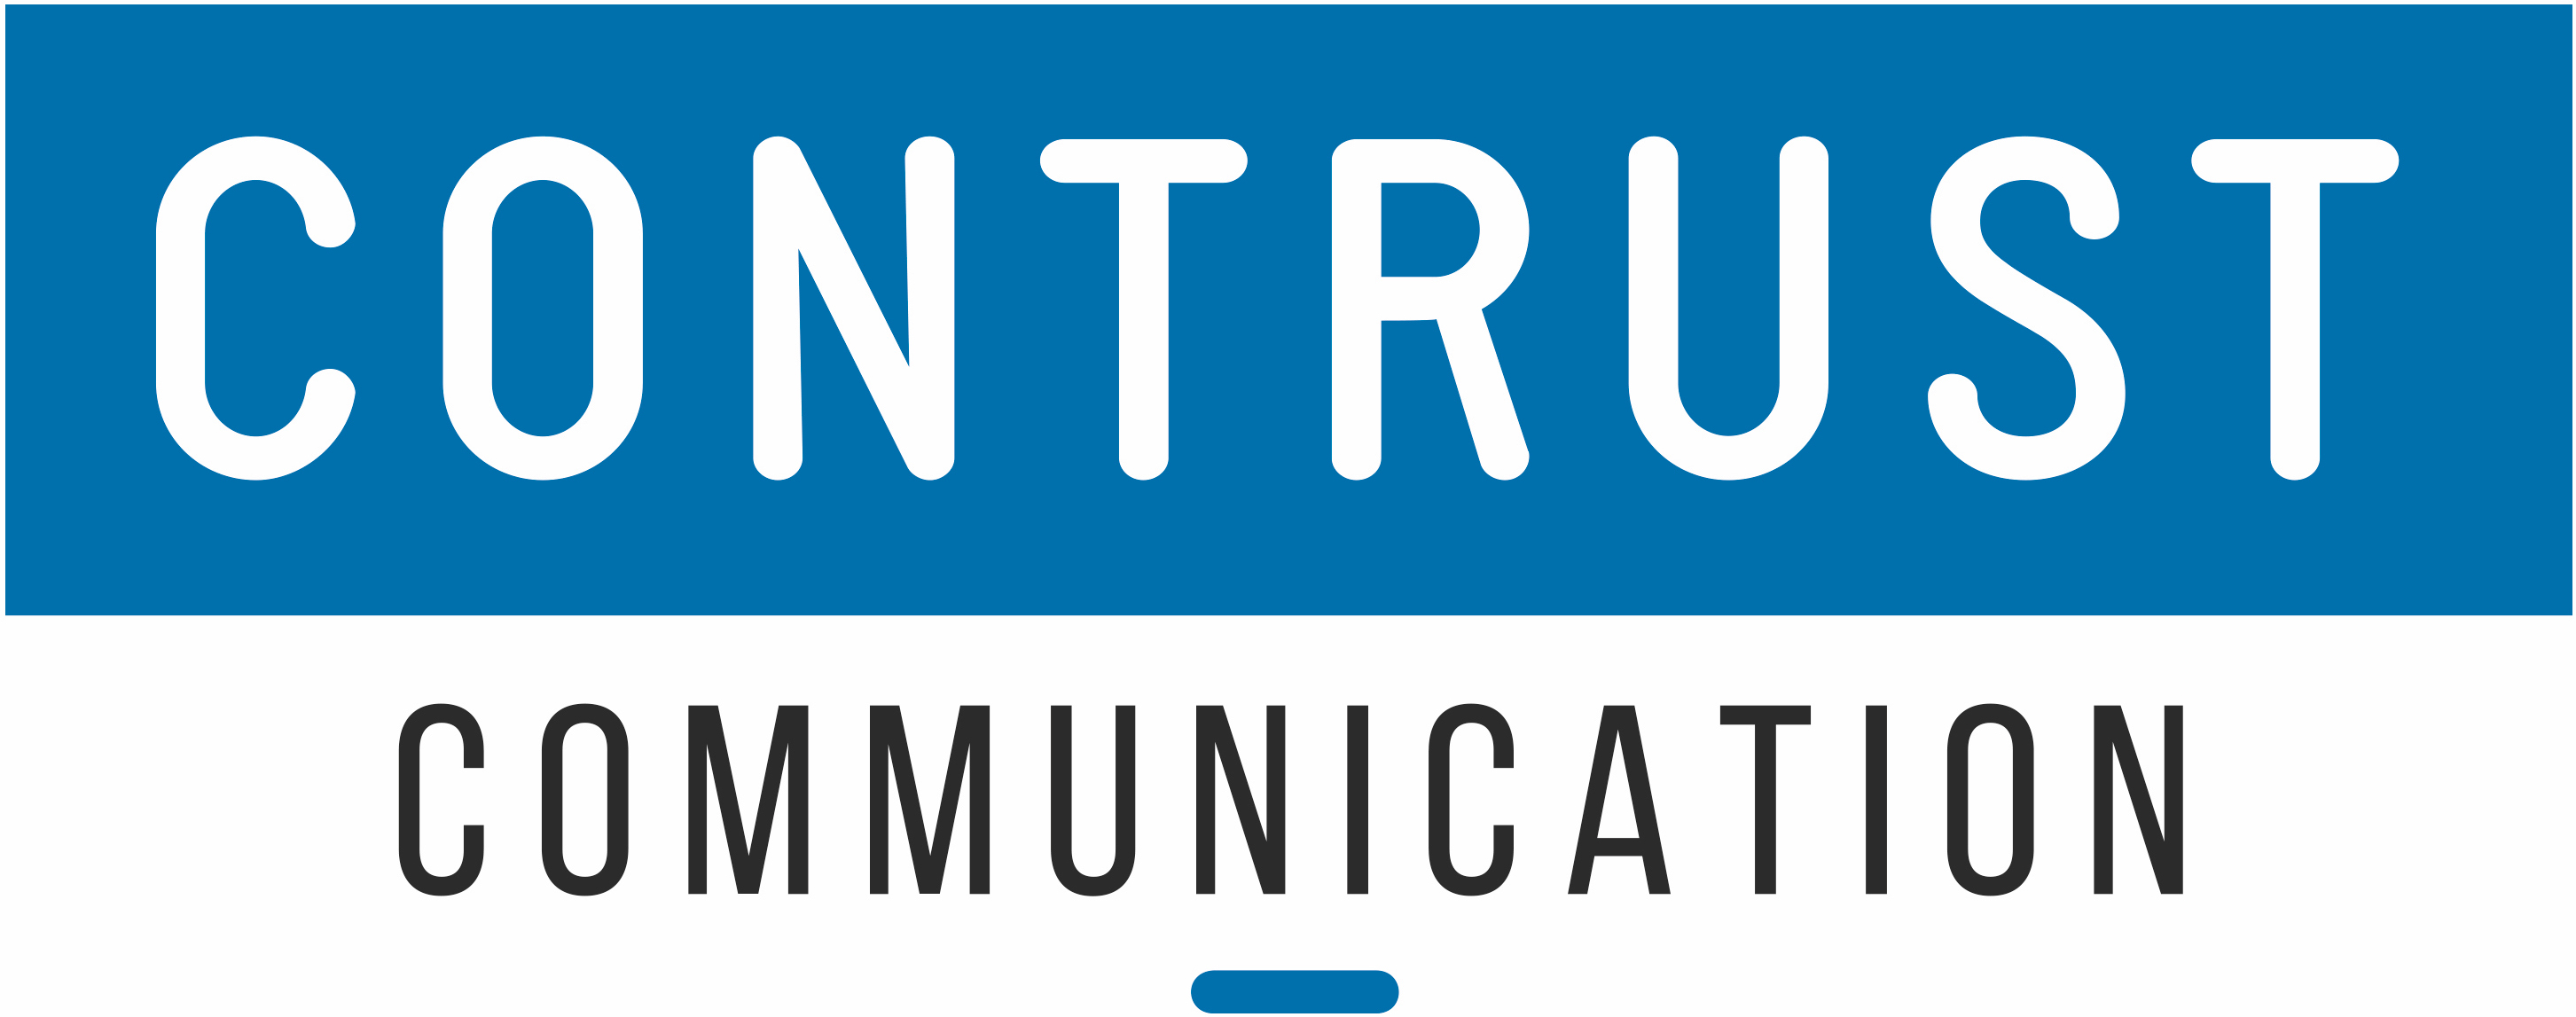 ConTrust Communication logo